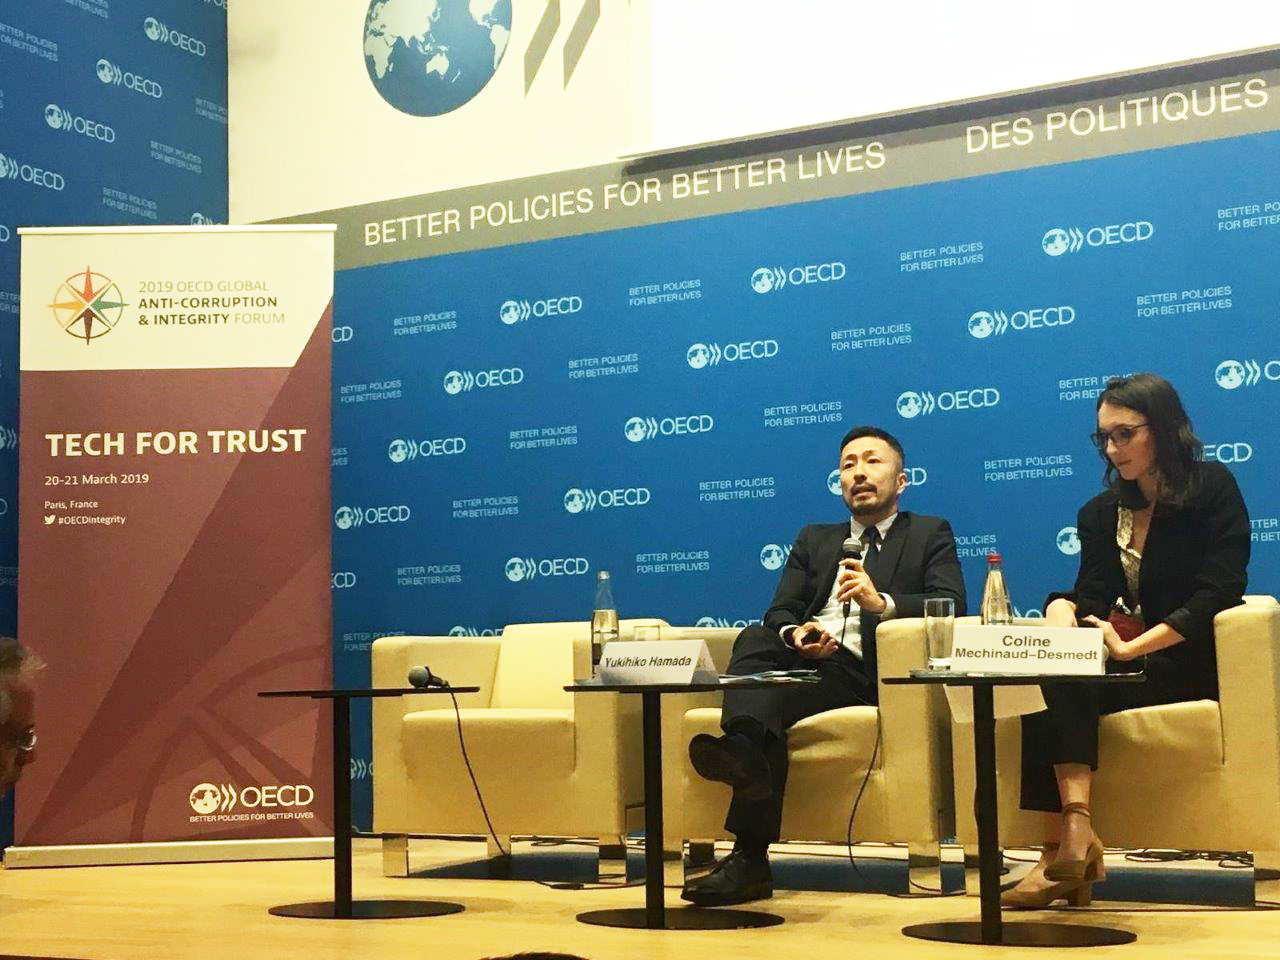 Yukihiko Hamada, at left, during OECD's annual Global Anti-Corruption and Integrity Forum, March 2019.  International IDEA and the United Nations Office on Drugs and Crime (UNODC), provided an extensive overview of cryptocurrencies' policy implications at the Forum. Photo credit: OECD.